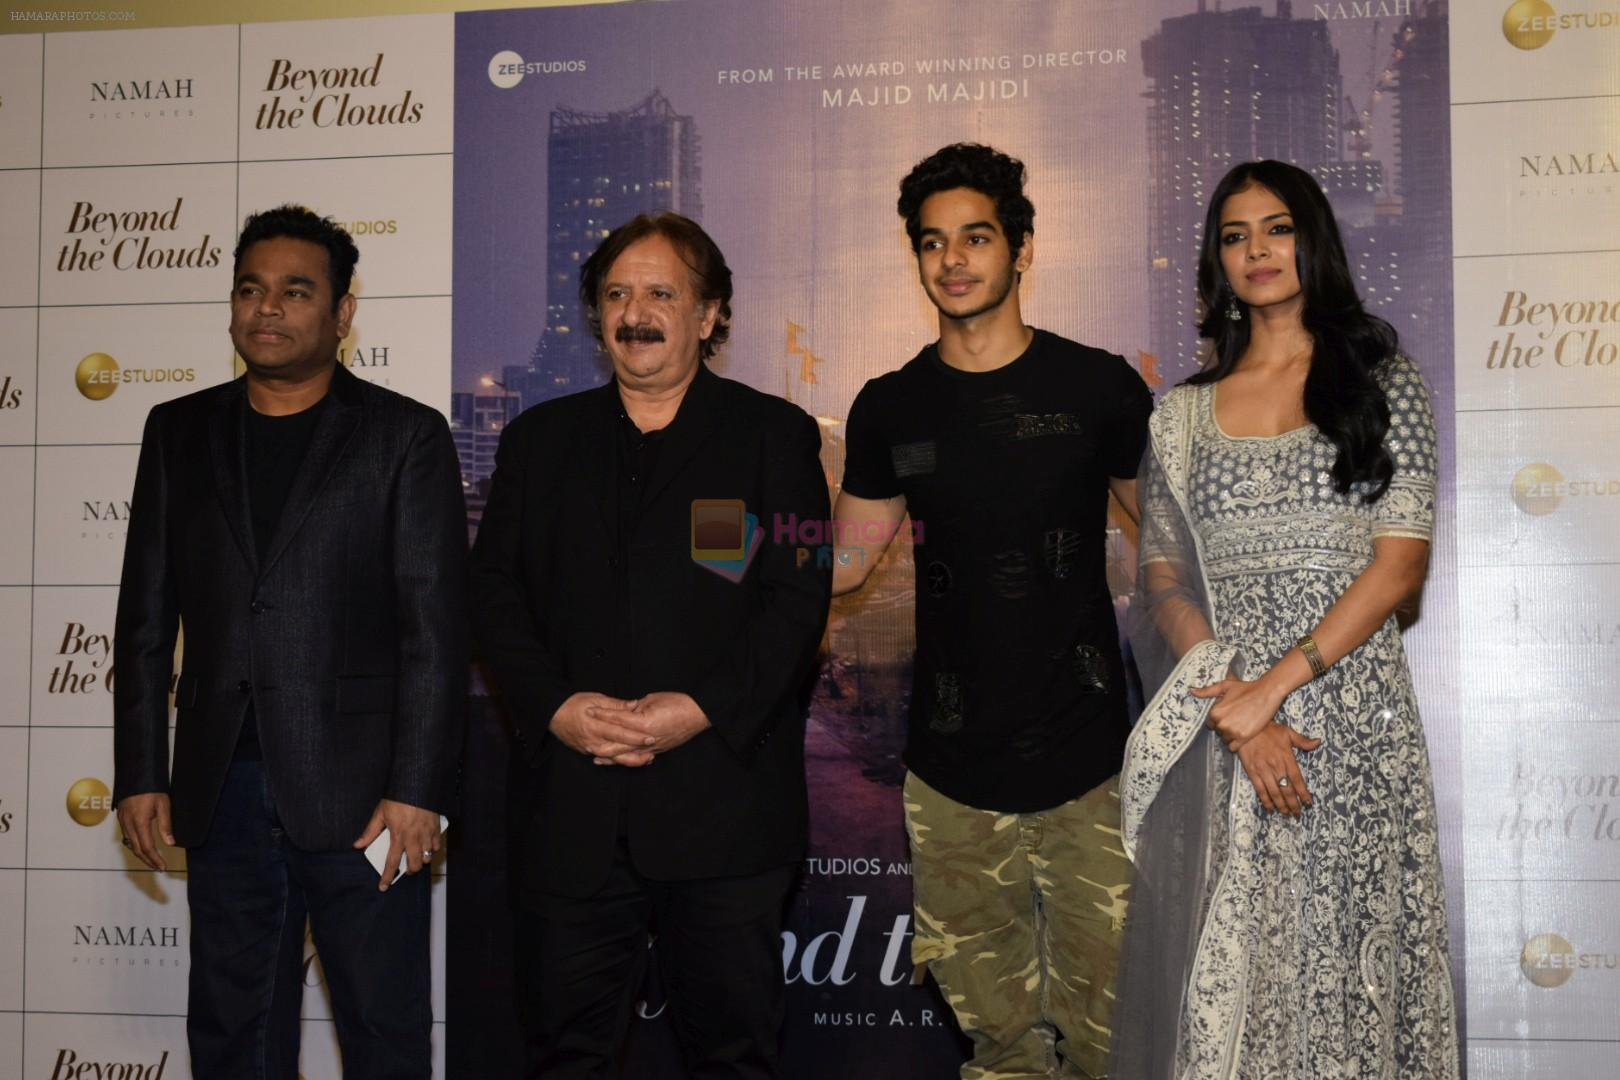 Ishaan Khatter, Malavika Mohanan, Majid Majidi, A R Rahman at the Trailer launch of film Beyond the Clouds on 29th Jan 2018